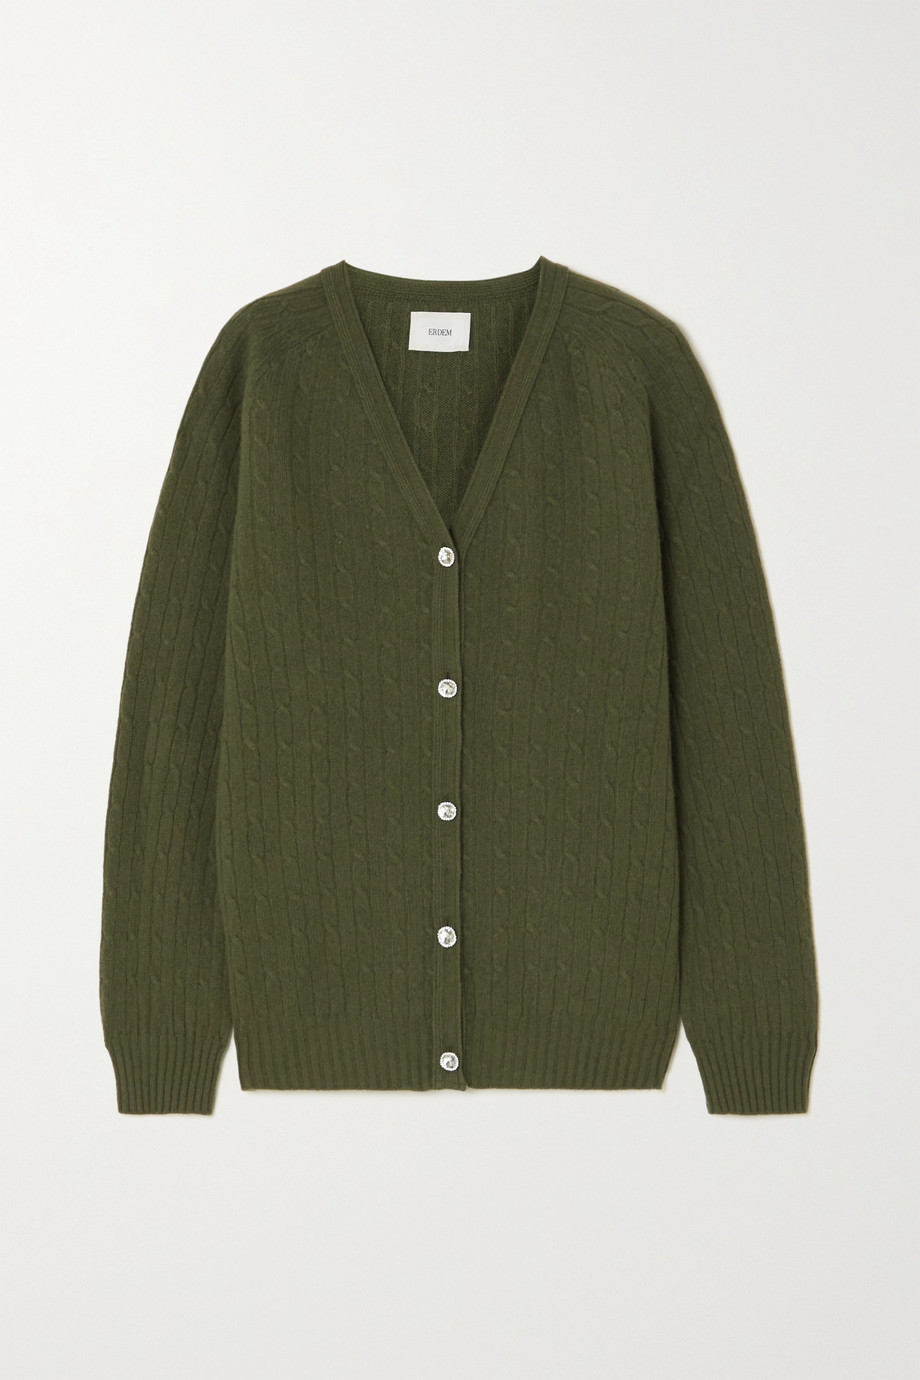 Erdem Myra merino wool and cashmere-blend cardigan